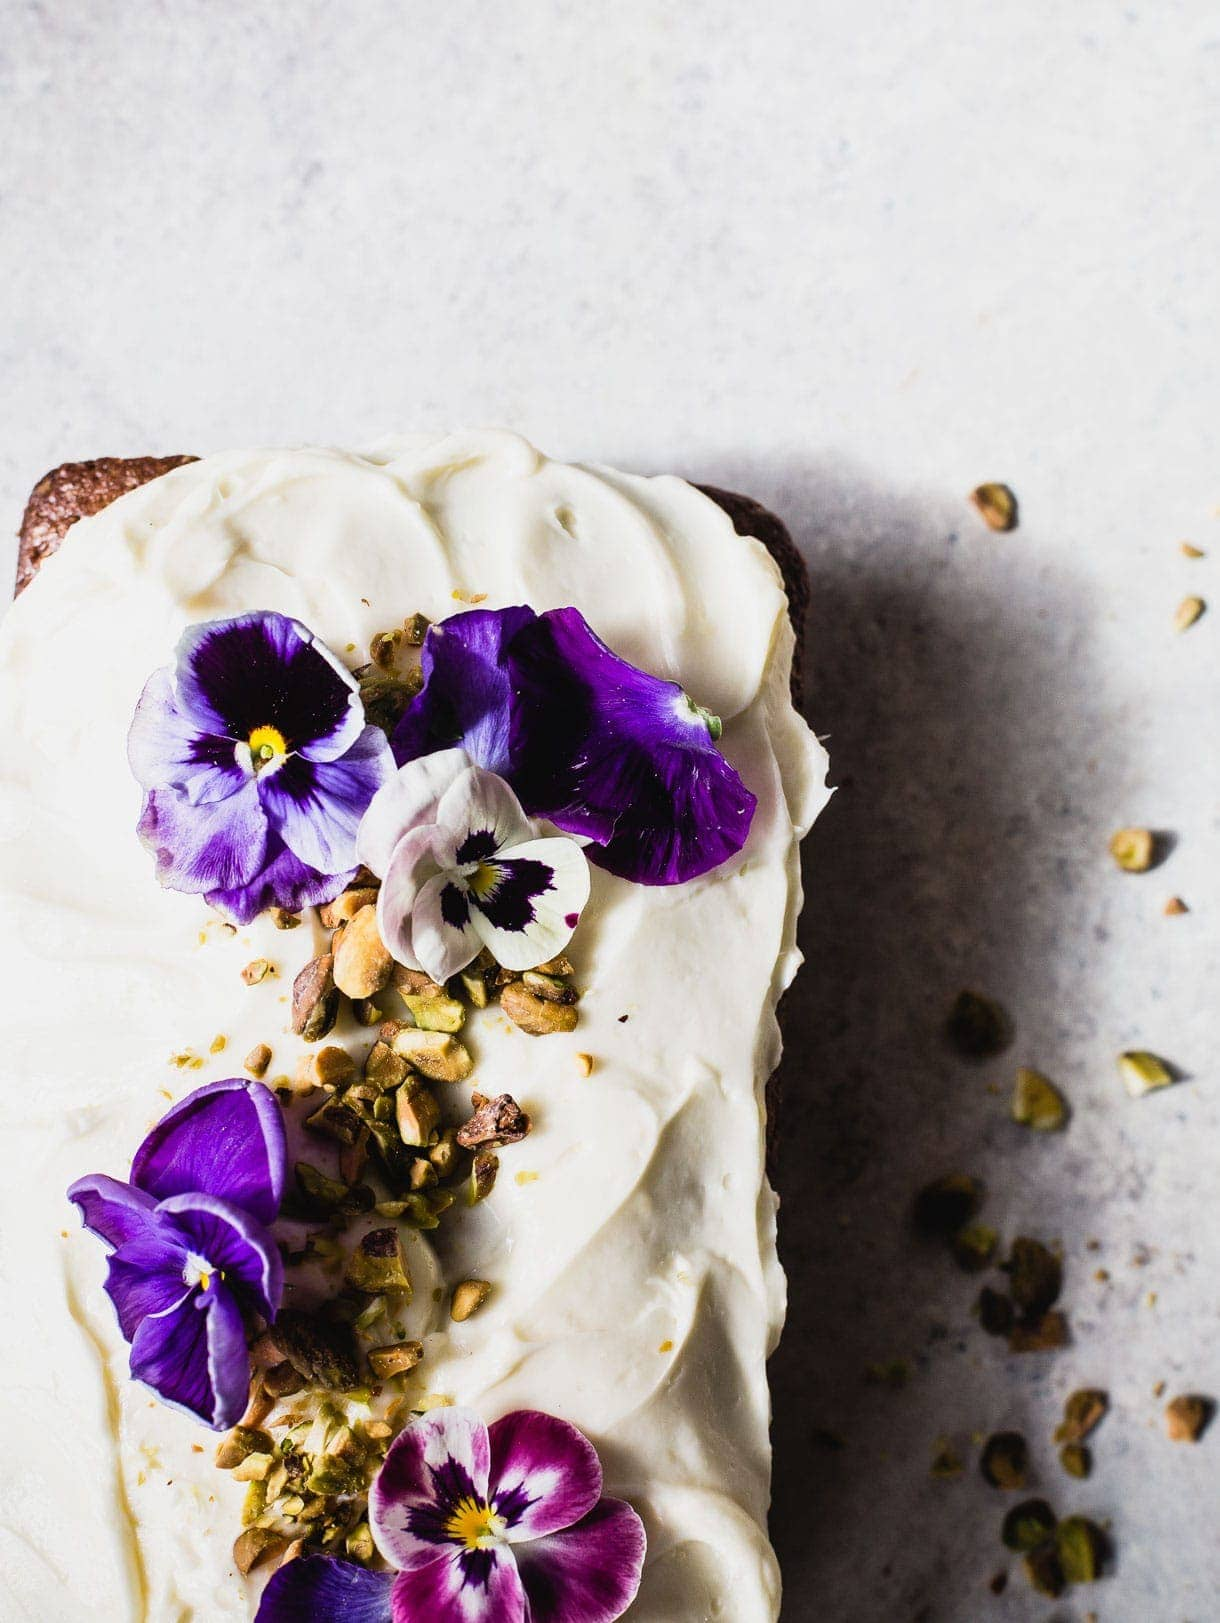 Gluten-Free Pistachio Cardamom Cake with Cream Cheese Frosting {made with teff flour, edible flowers}